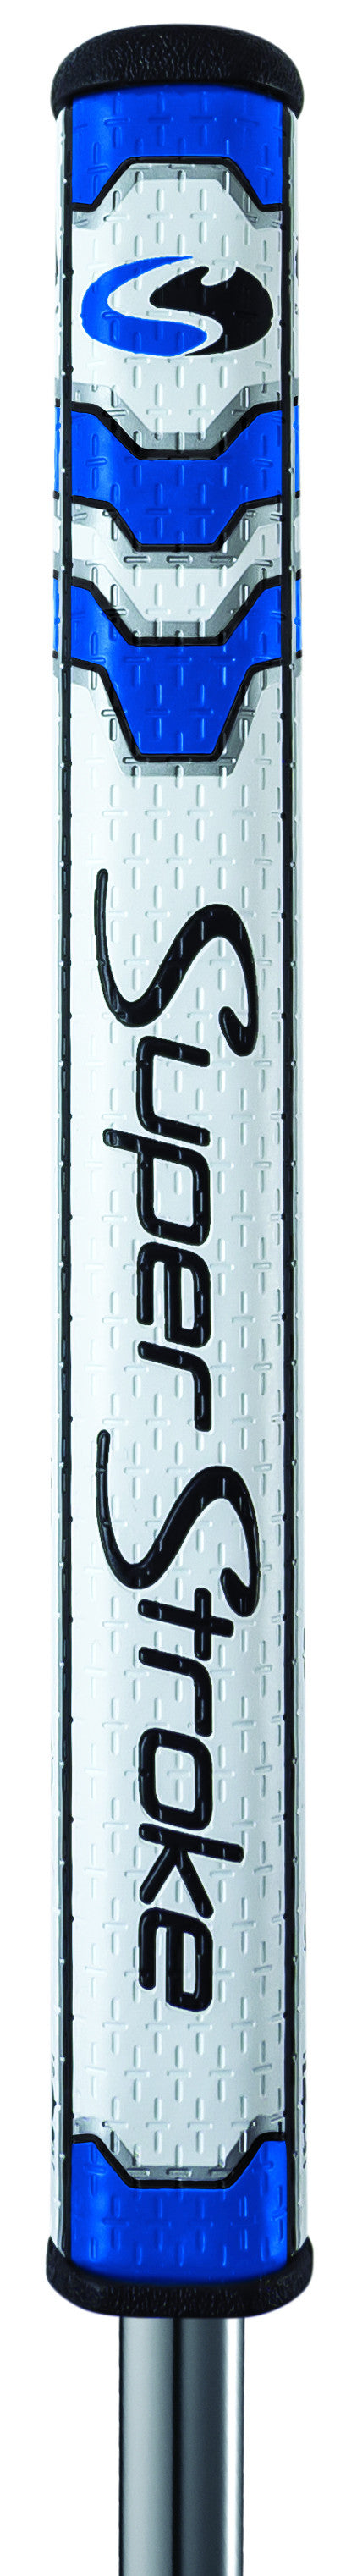 Super Stroke Legacy Putter Grip with Counter Core